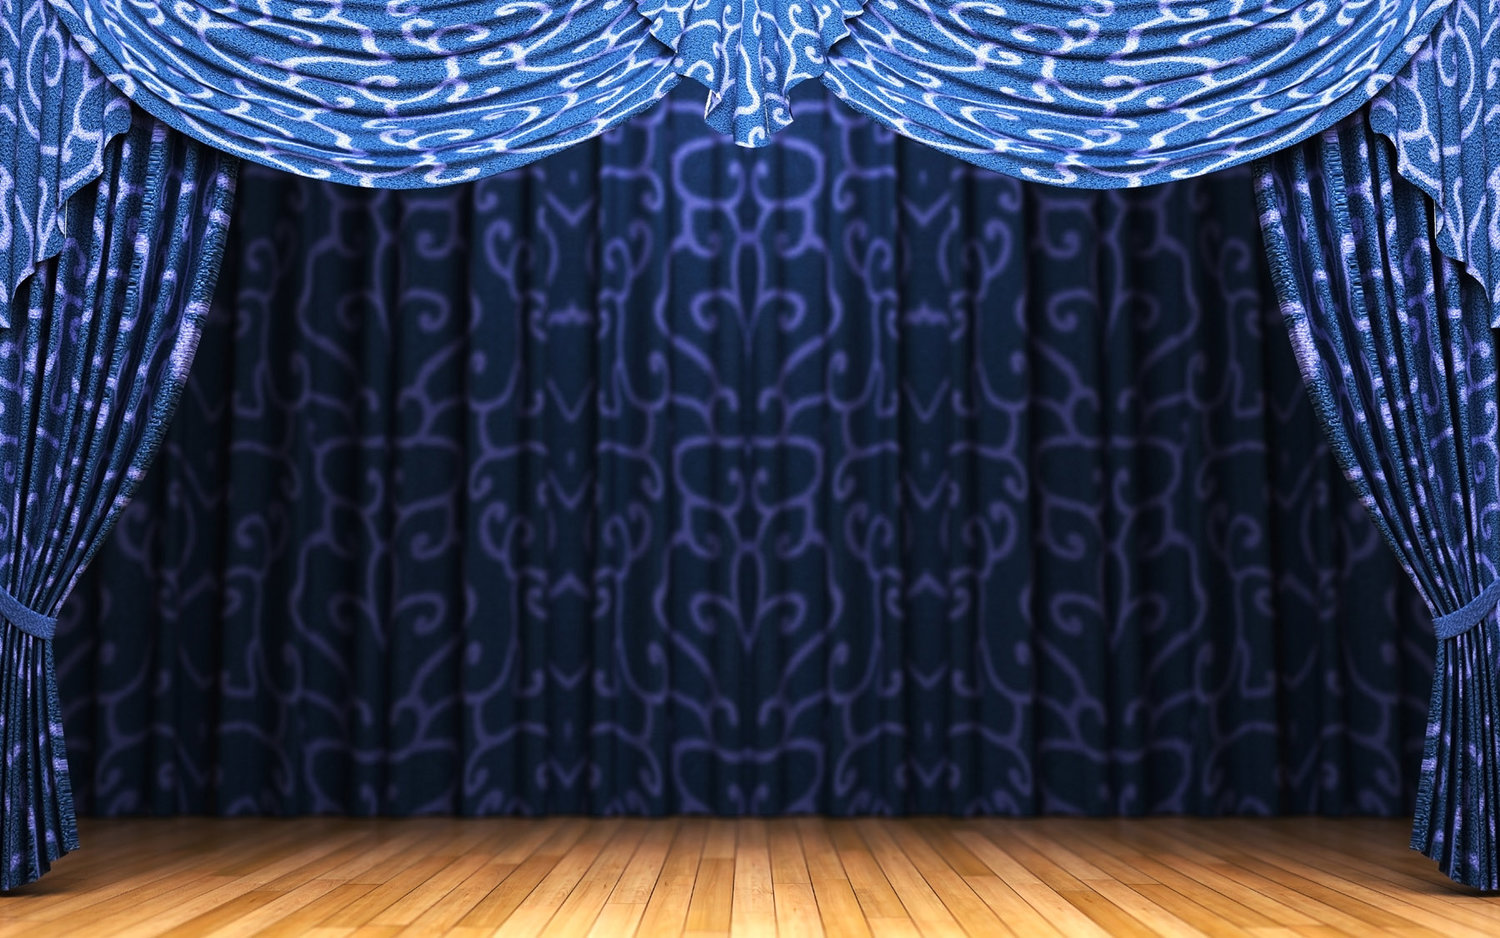 Bl blue stage curtains background - Blue Stage Curtains Blue Theatre Curtain